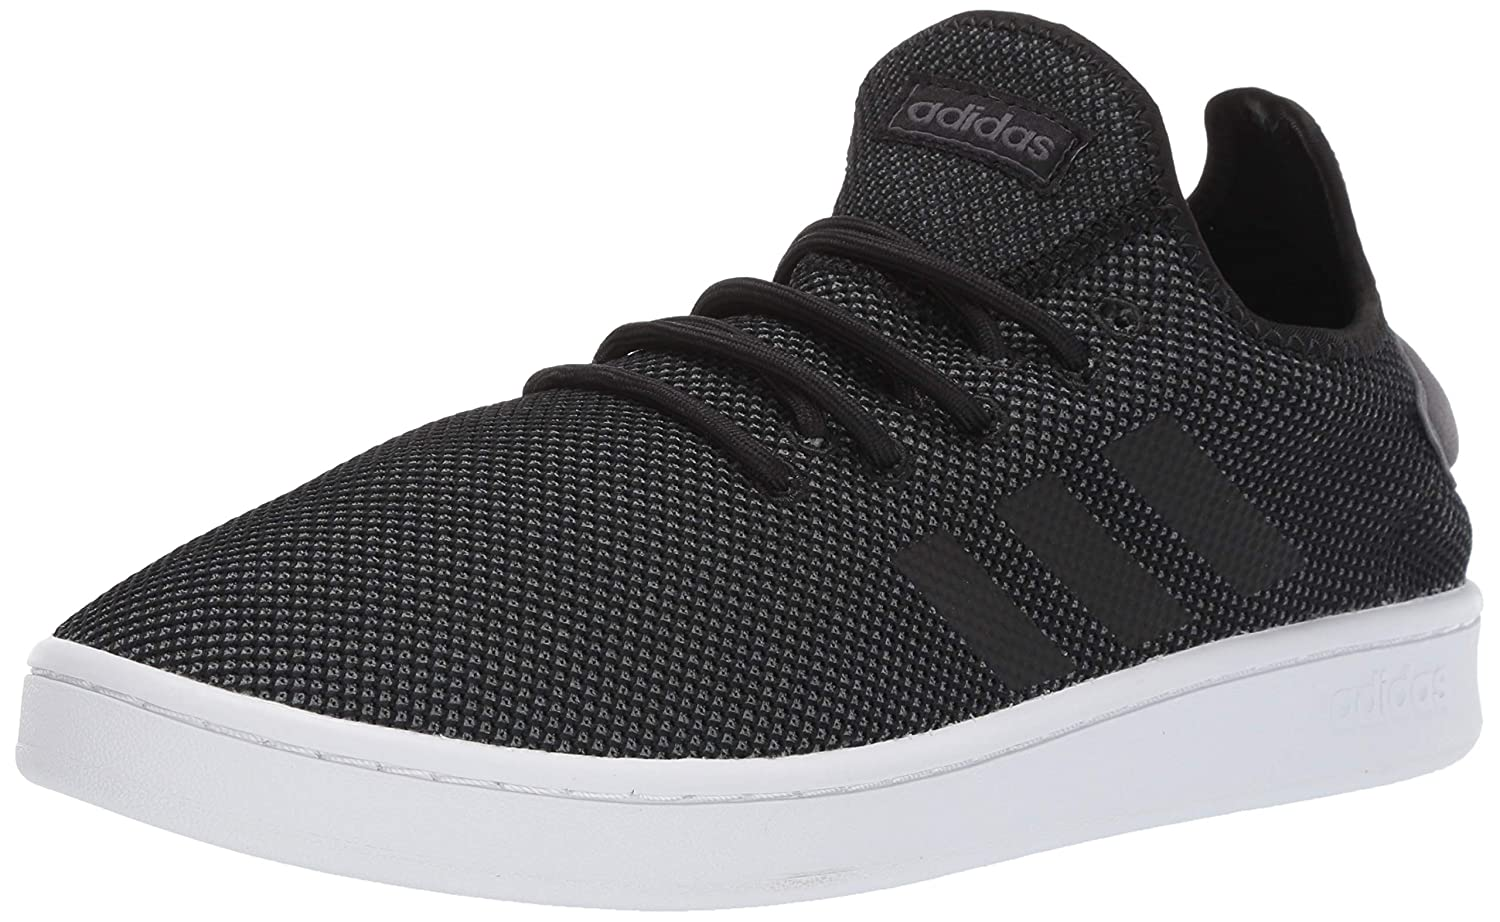 new products 971de aec6a Amazon.com   adidas Men s Court Adapt   Fashion Sneakers